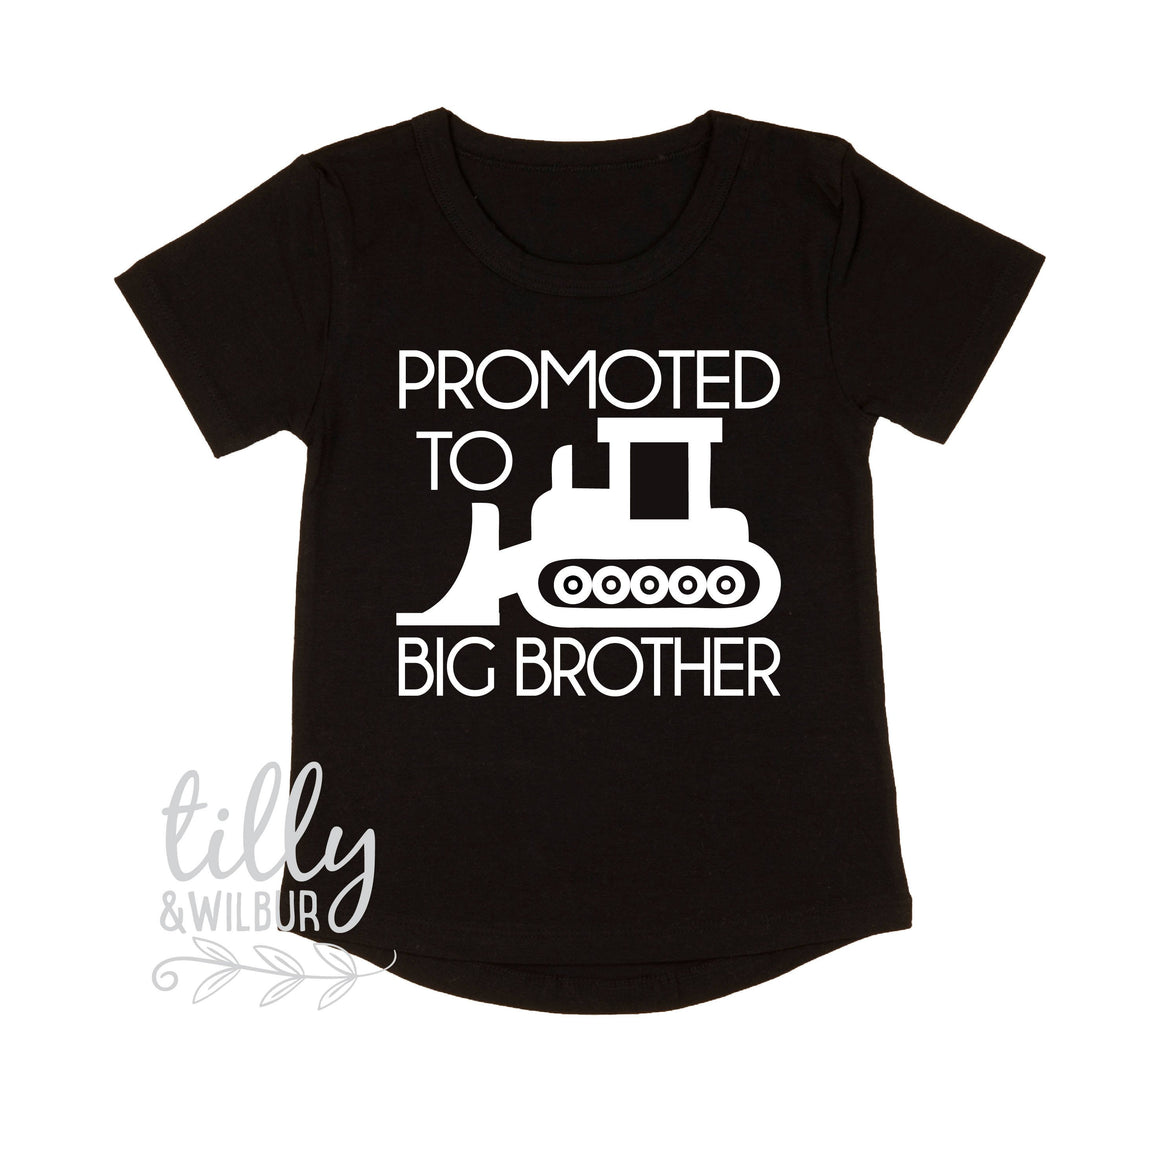 Promoted To Big Brother Digger T-Shirt For Boys, Big Brother Shirt, I'm Going To Be A Big Brother, Pregnancy Announcement, Boys Clothing